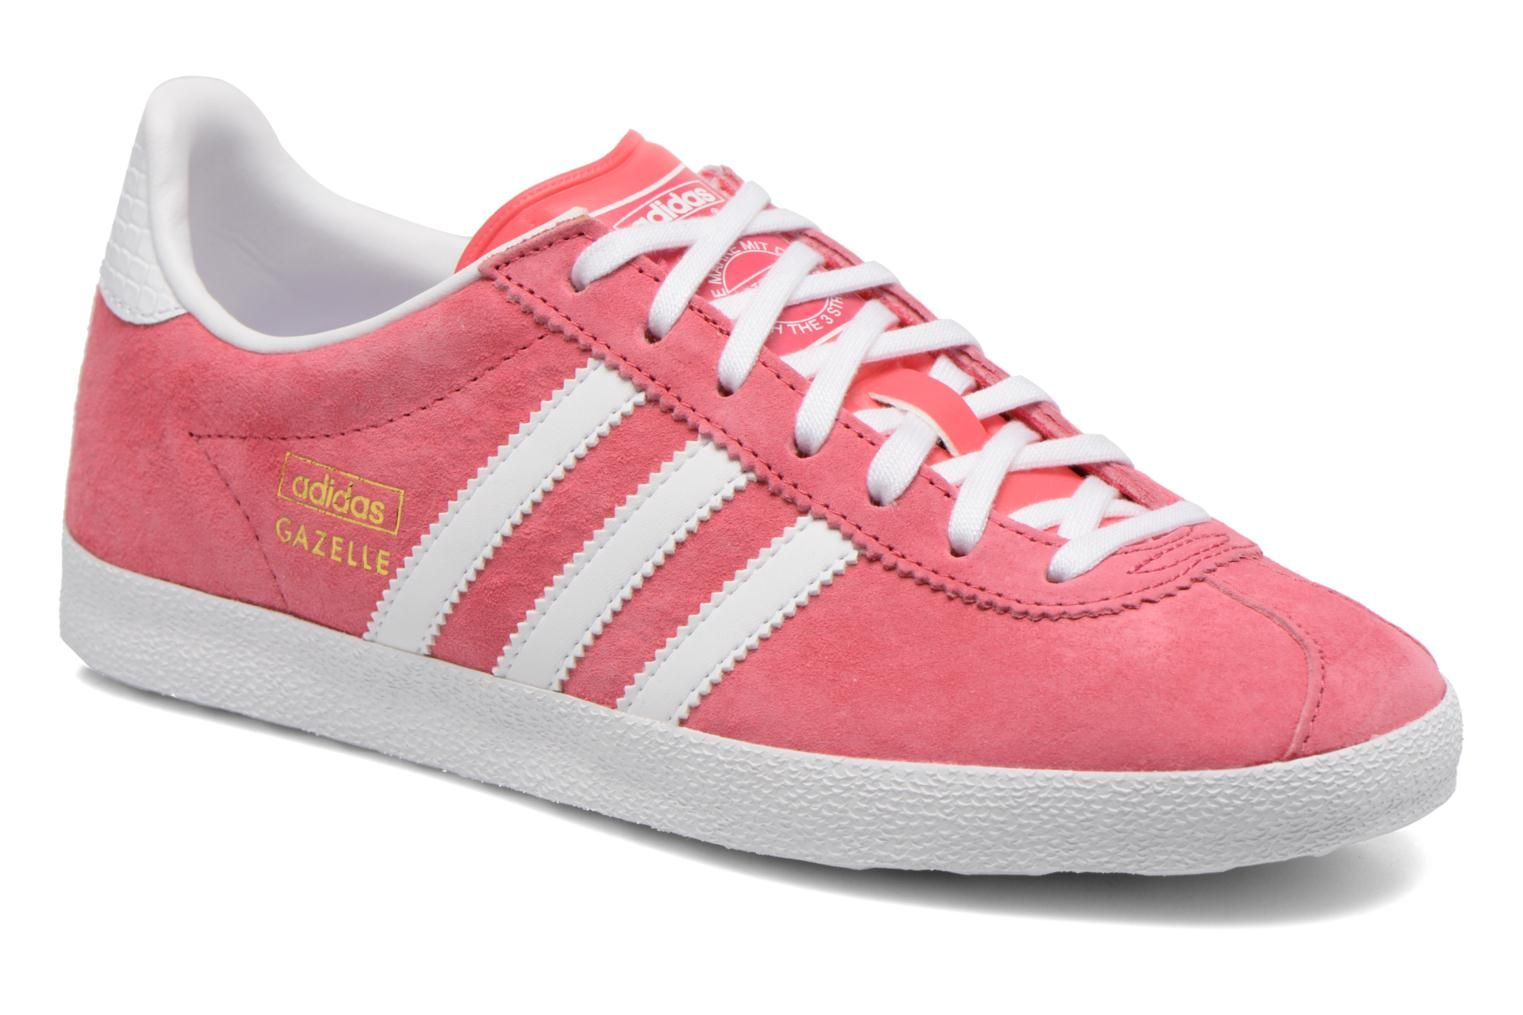 adidas original superstar rose pale